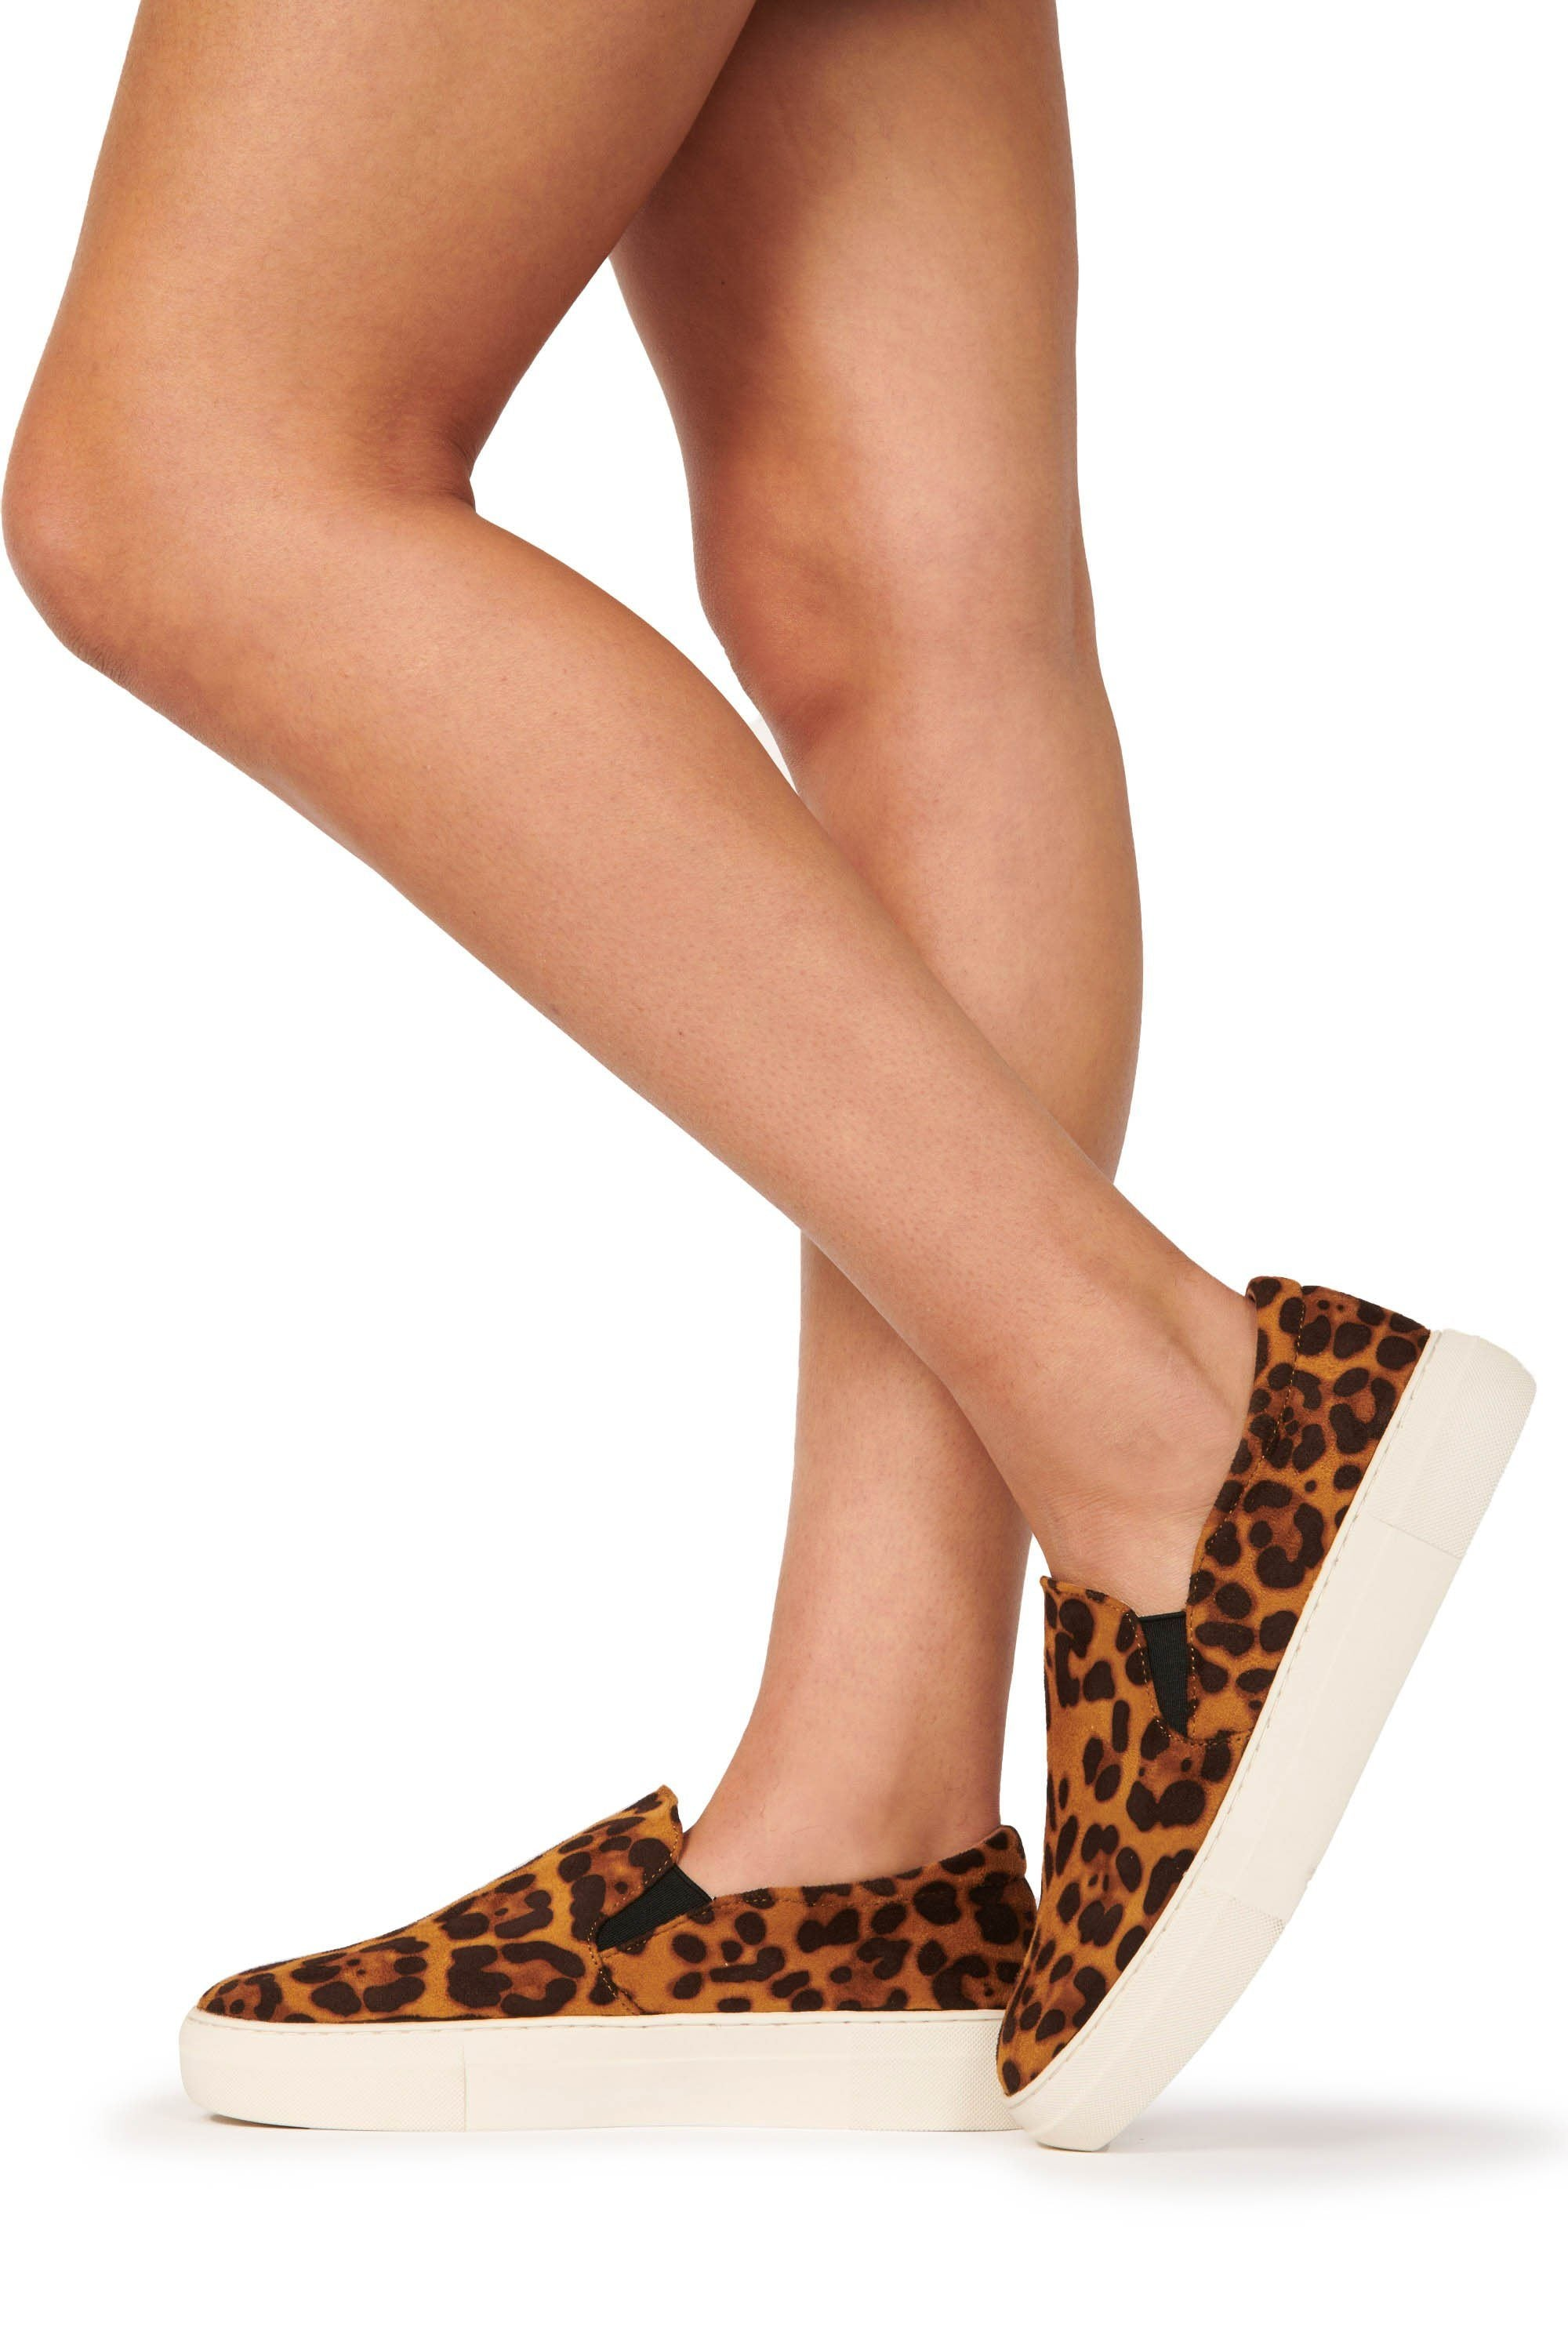 Suede Platform Slide Leopard Shoes HYPEACH BOUTIQUE